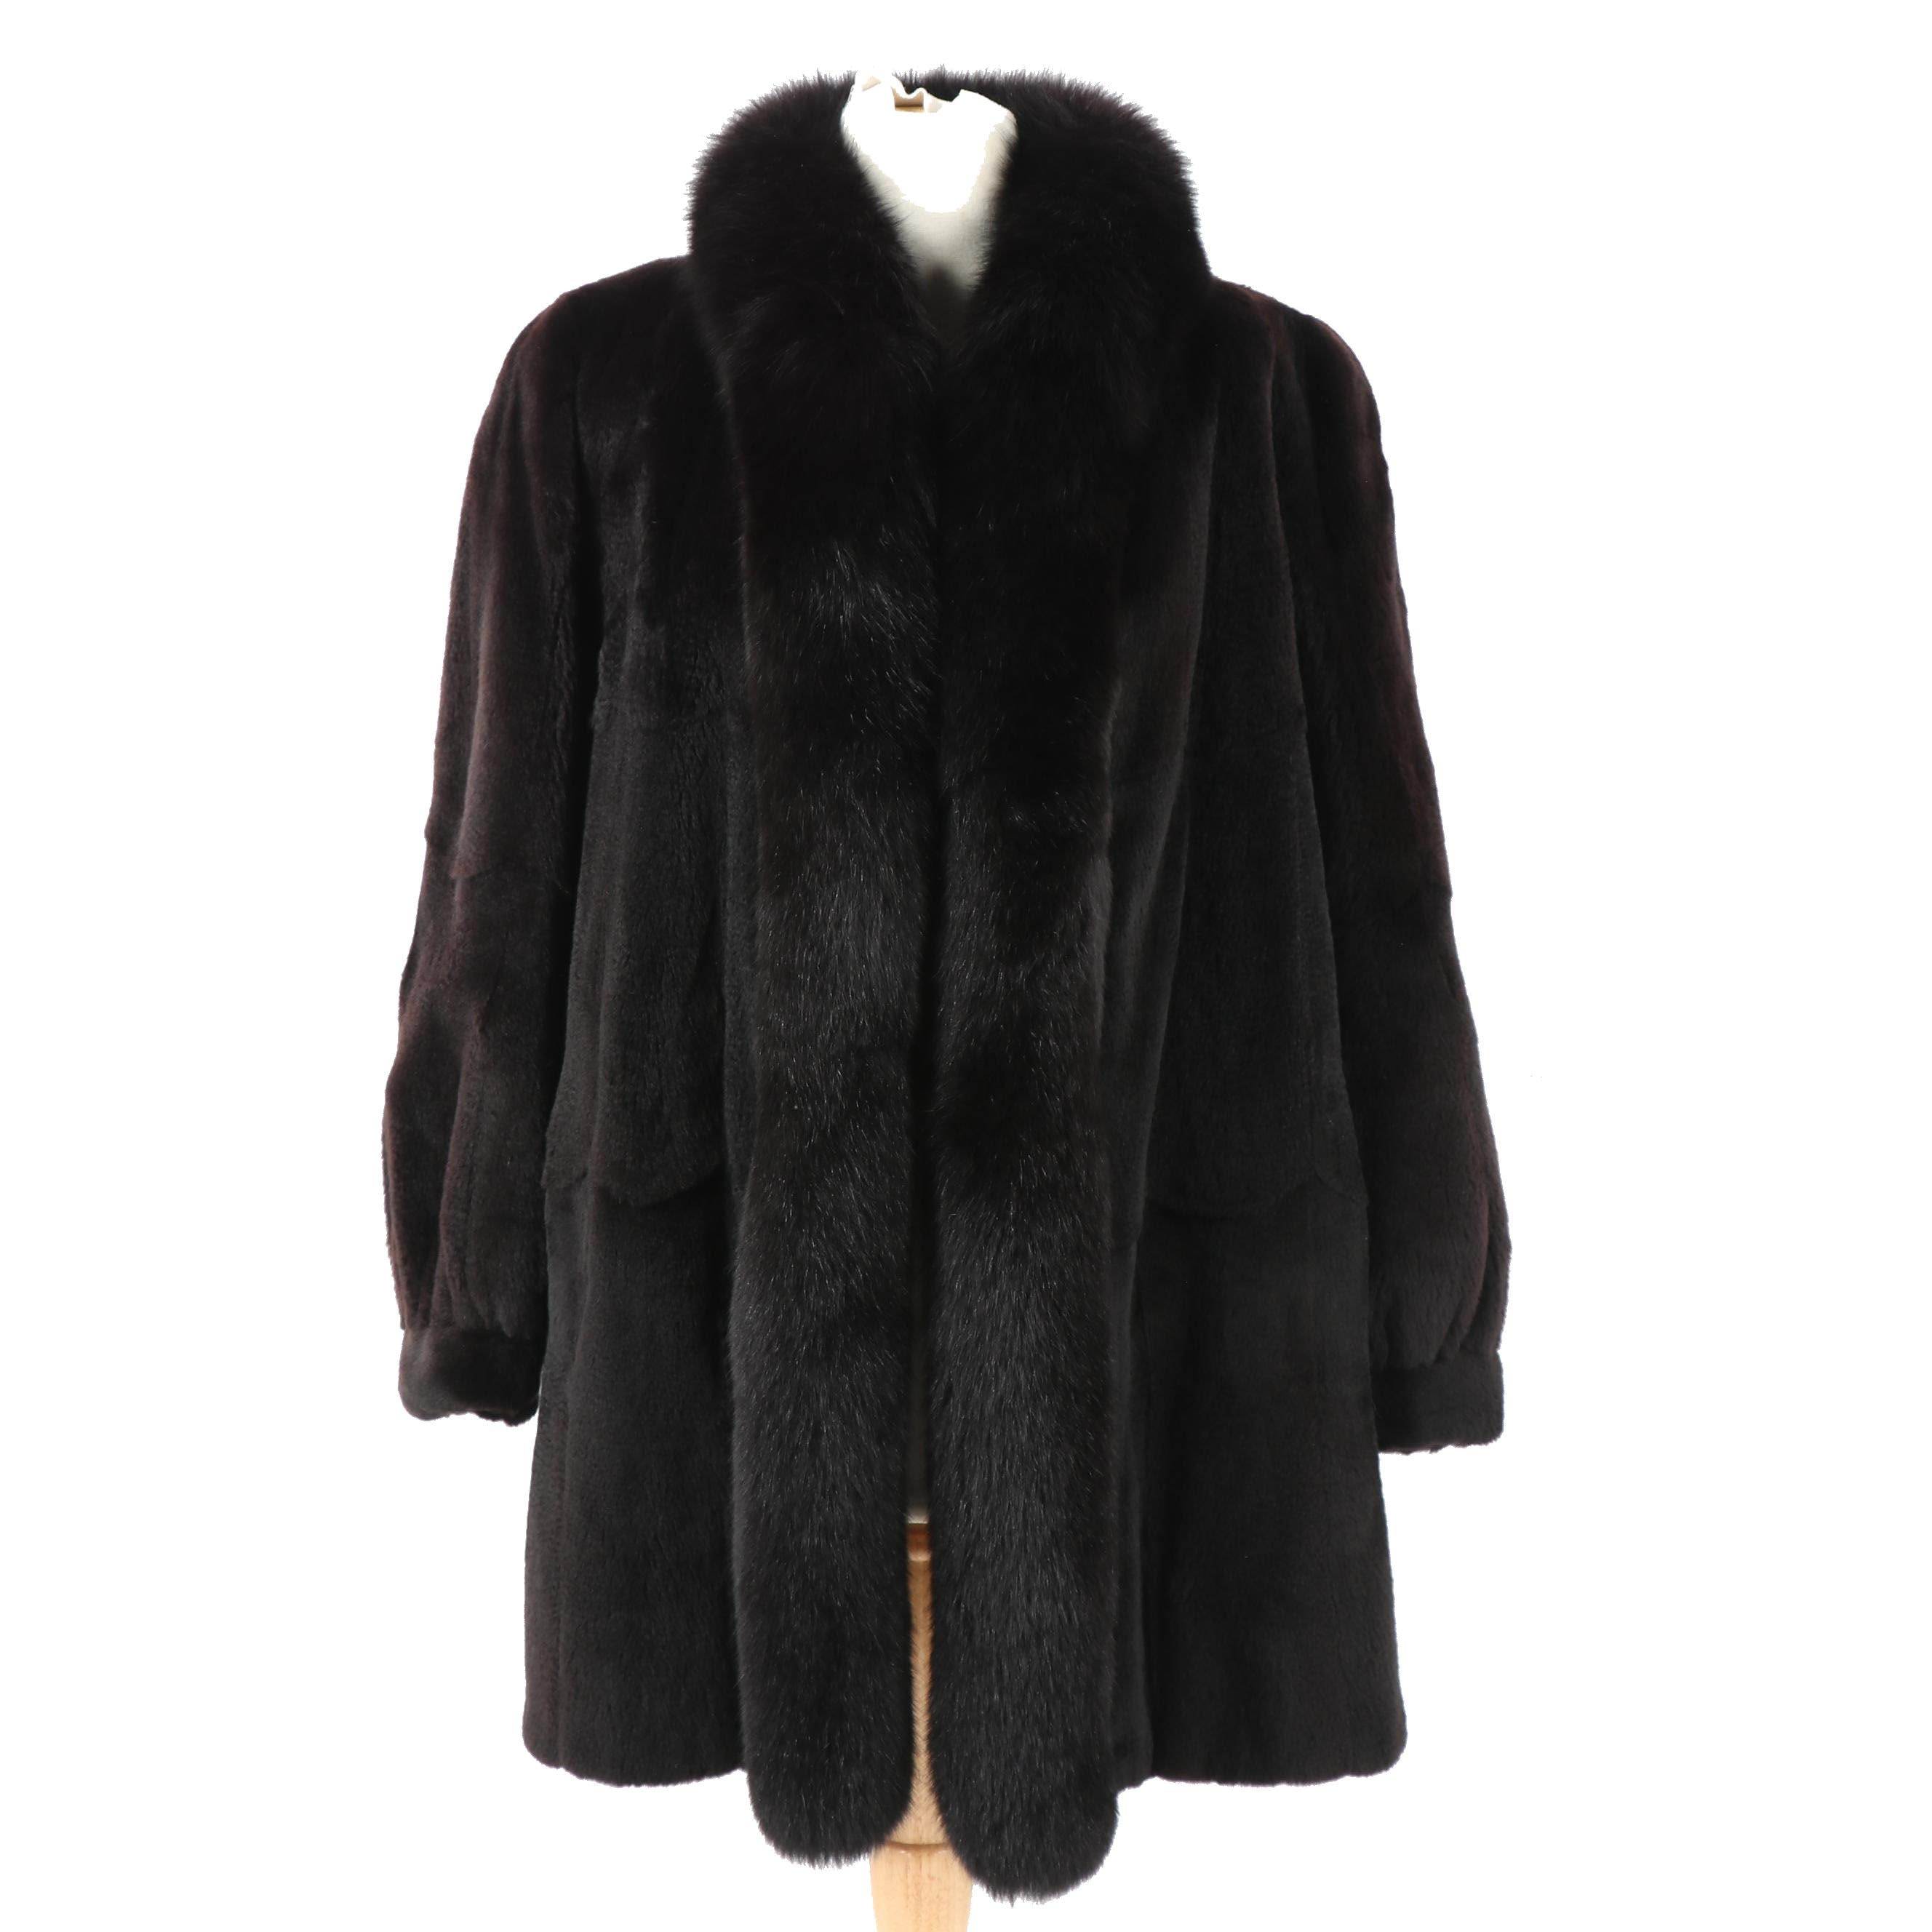 Women's Dyed Black Sheared Mink Fur Coat with Fox Fur Shawl Collar